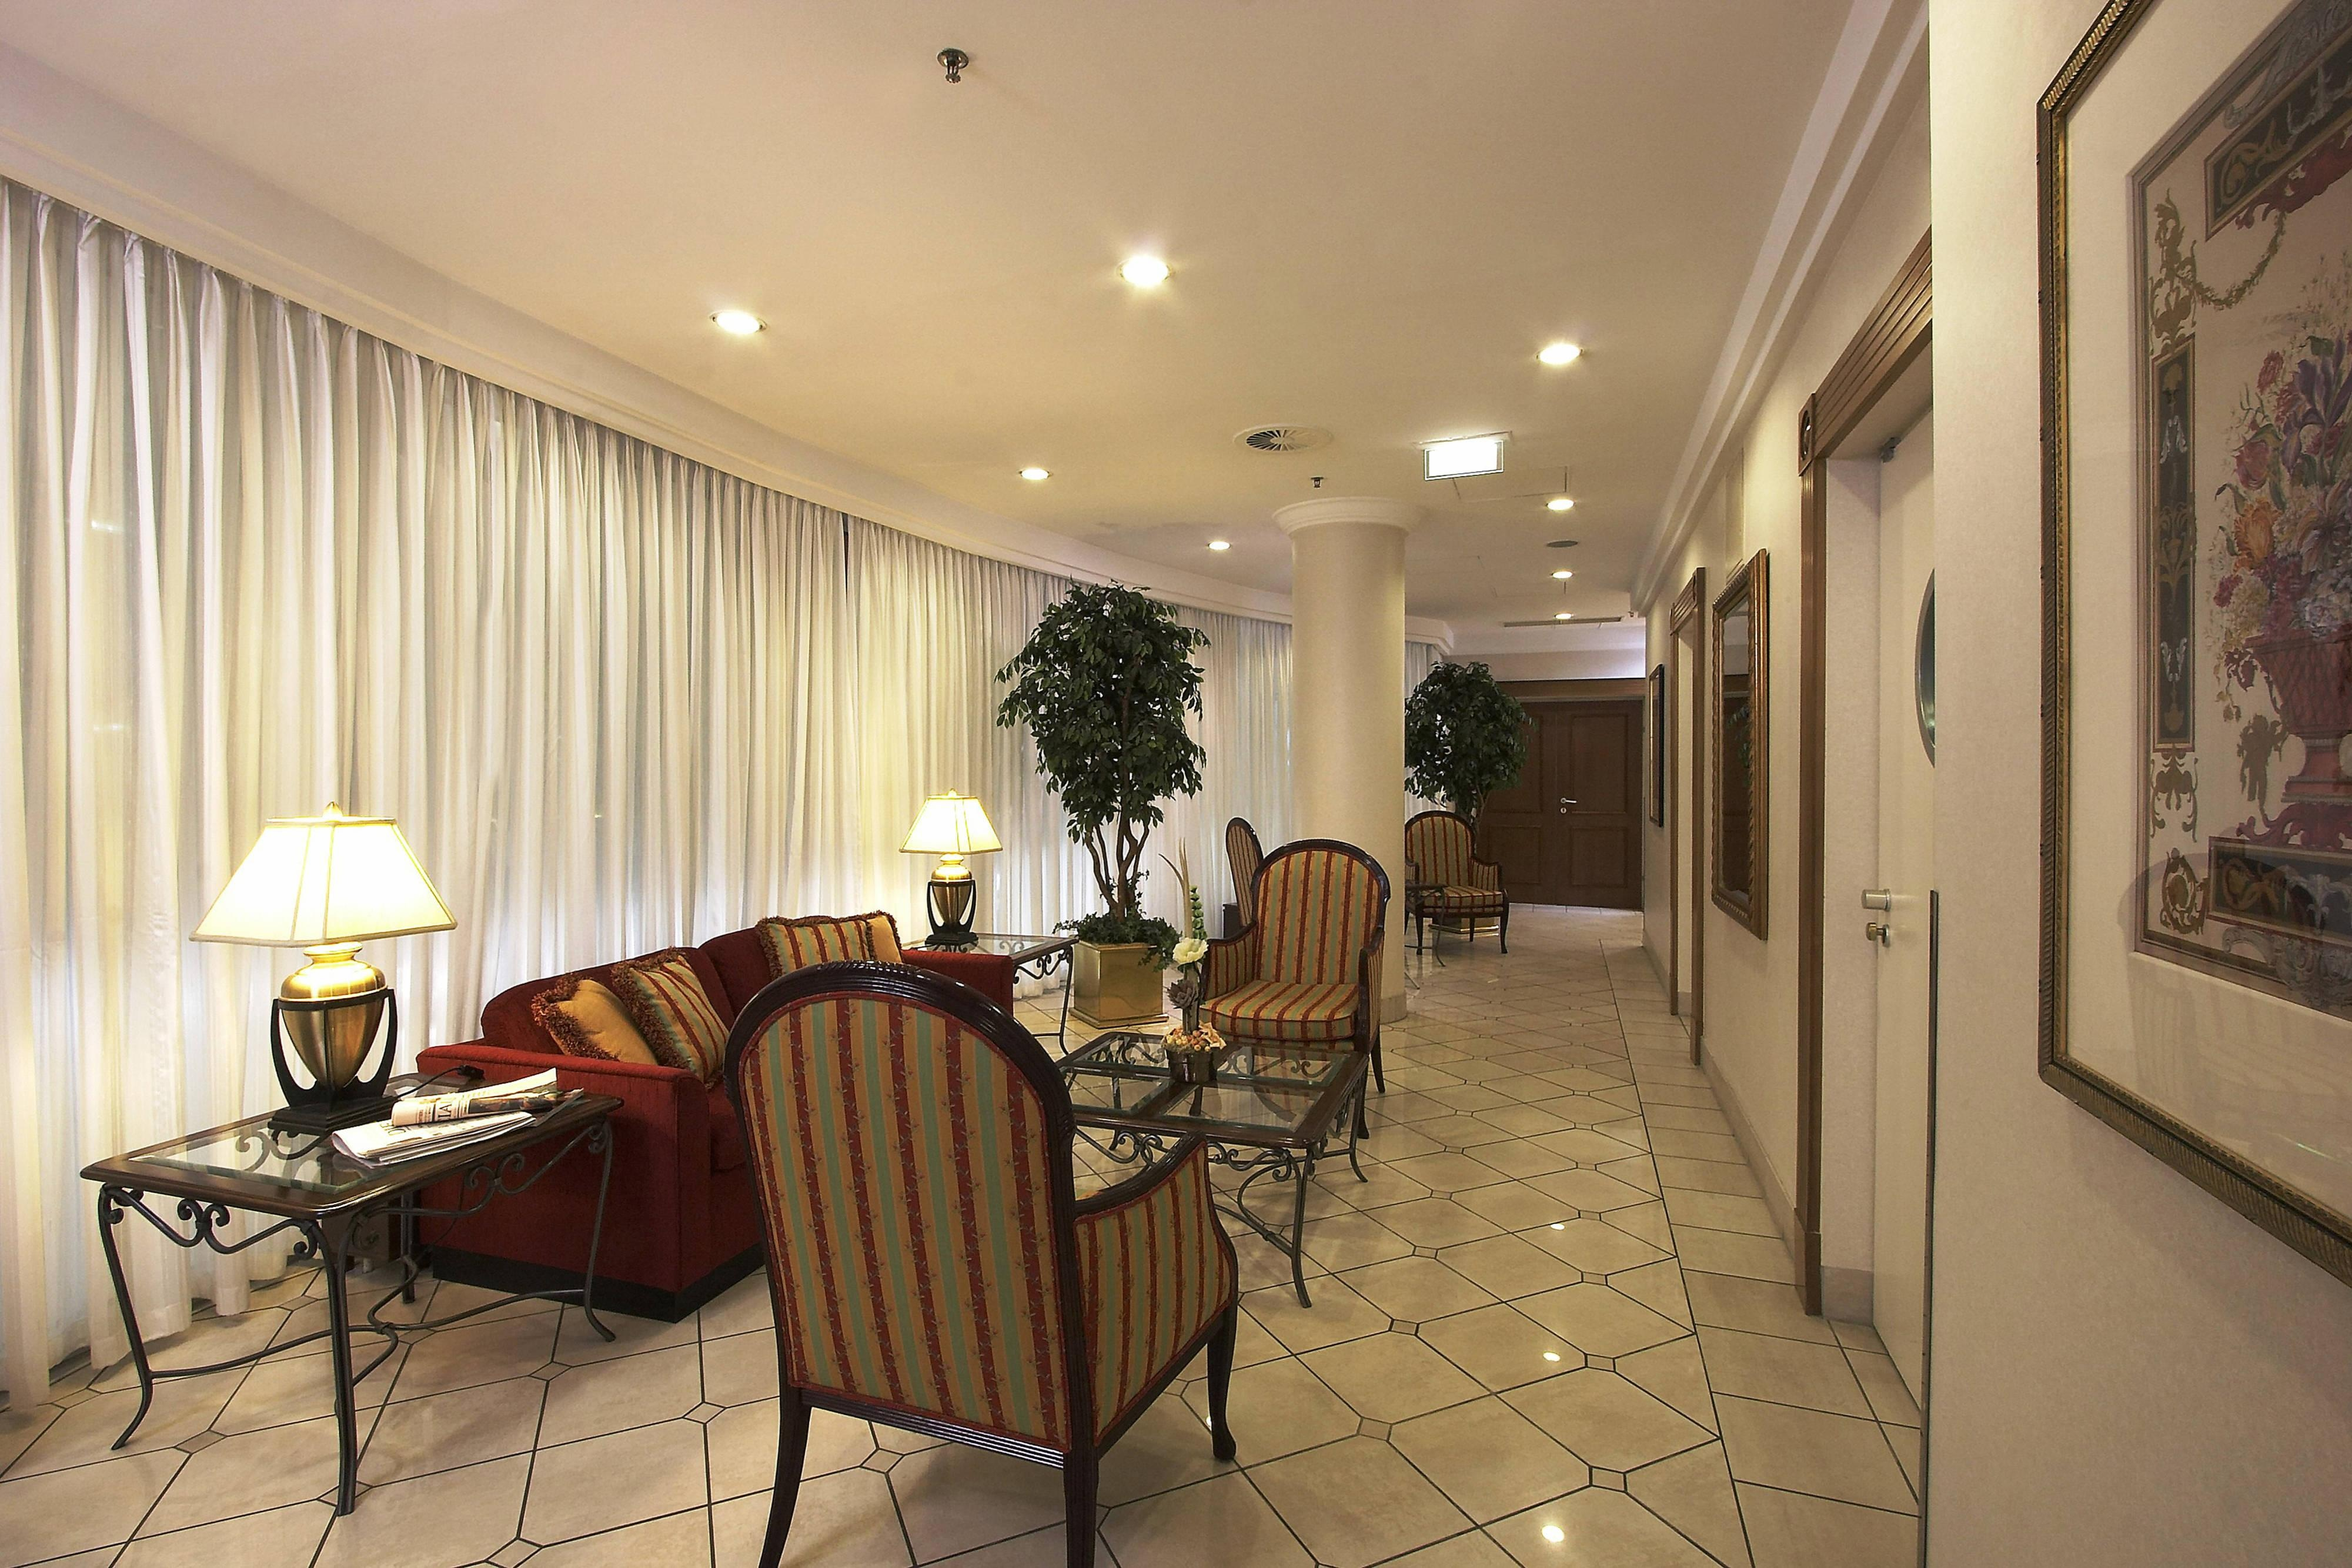 Executive Apartment in Budapest – Lobby